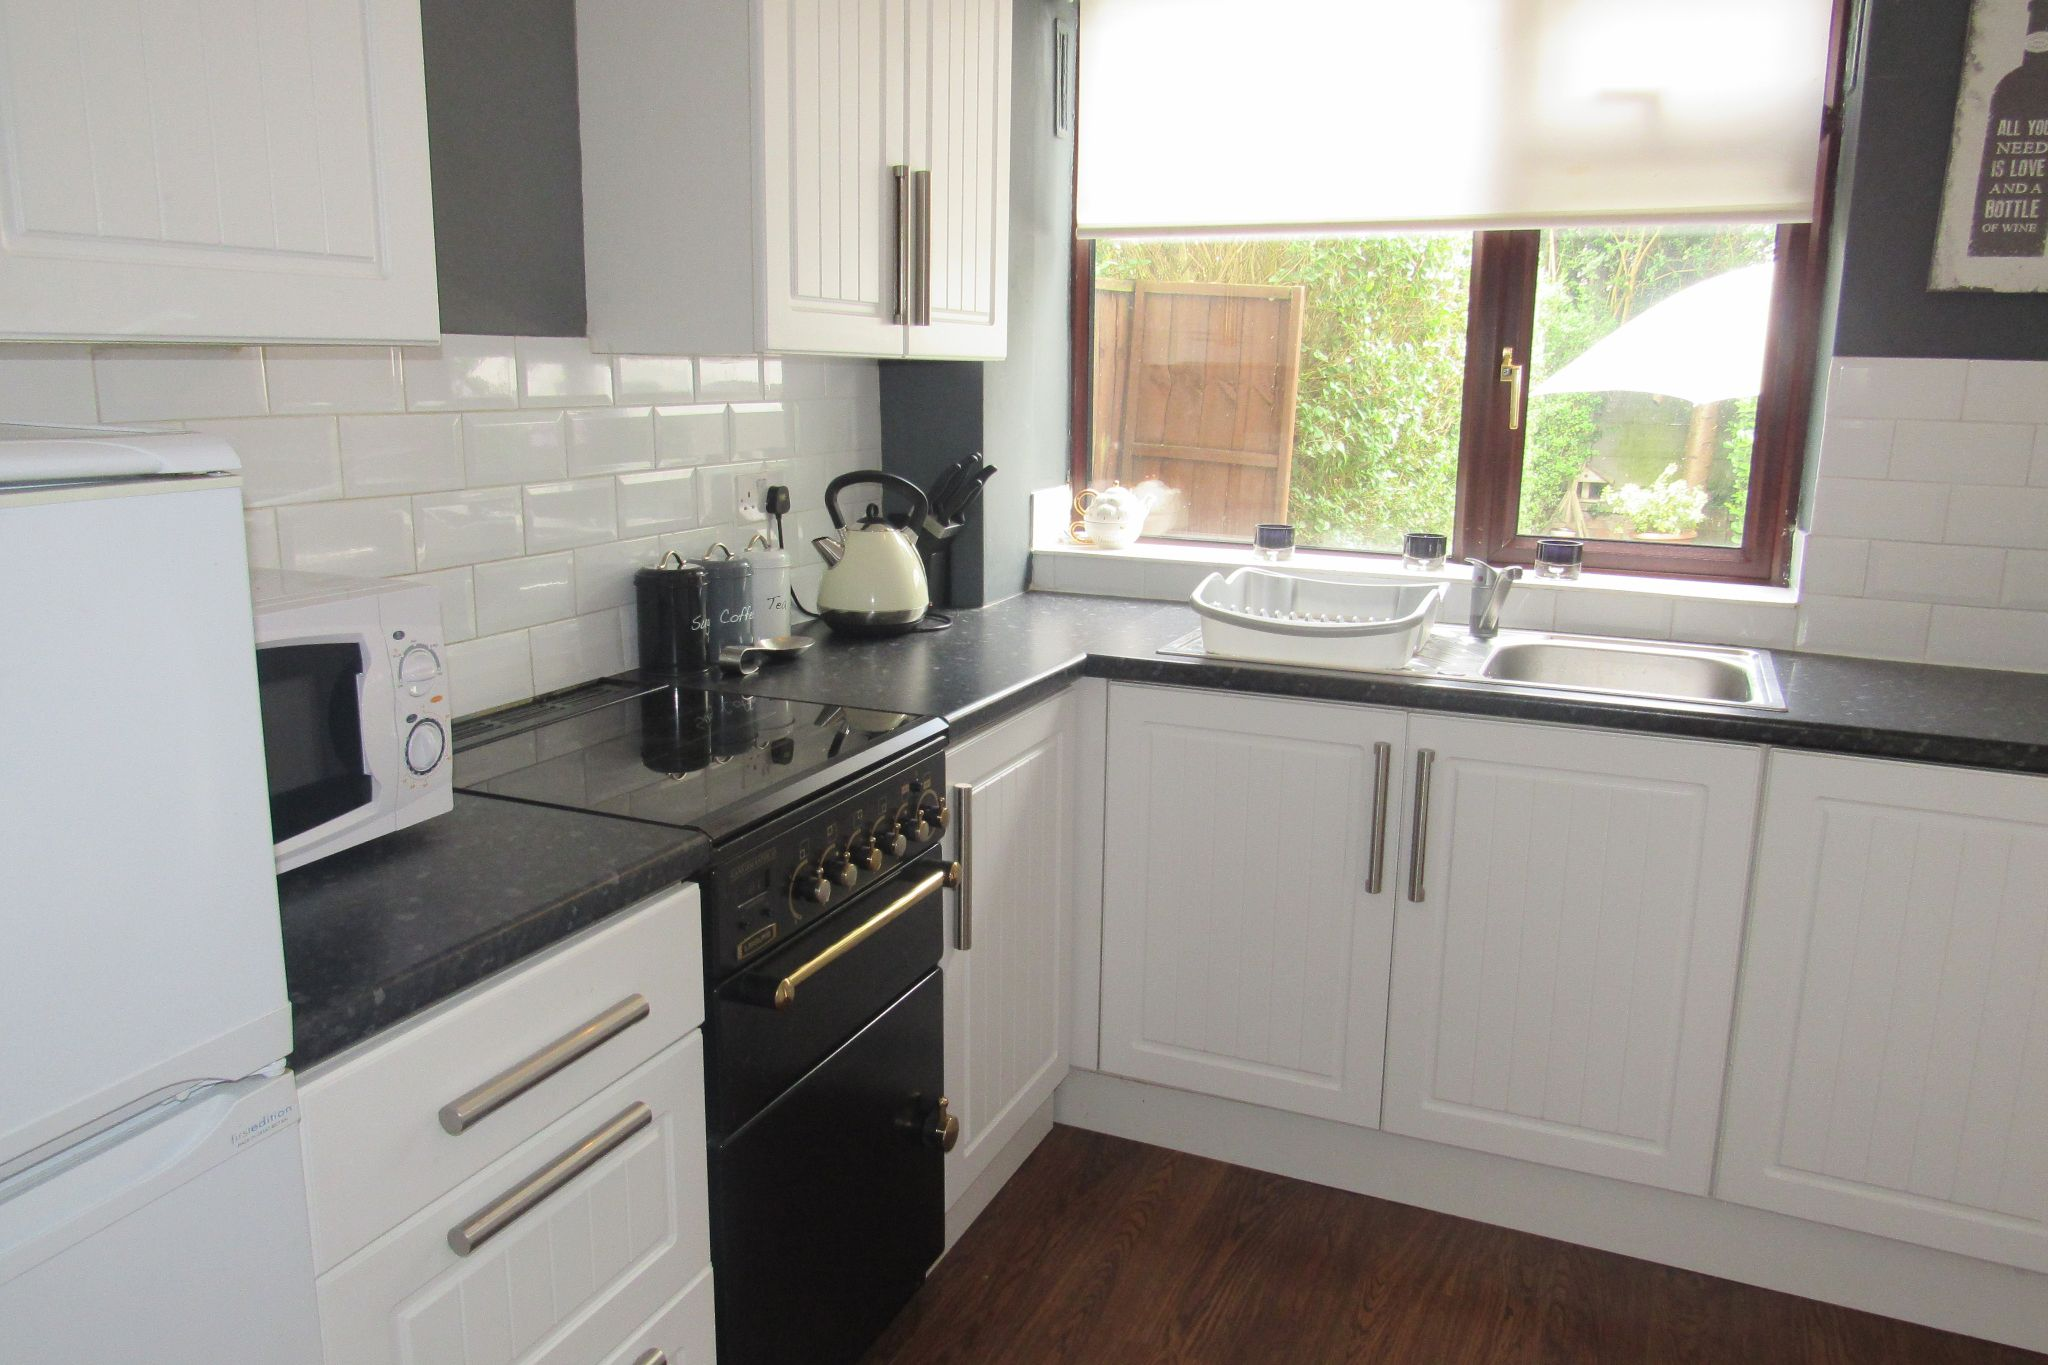 2 bedroom mid terraced house Under Offer in Manchester - Photograph 5.